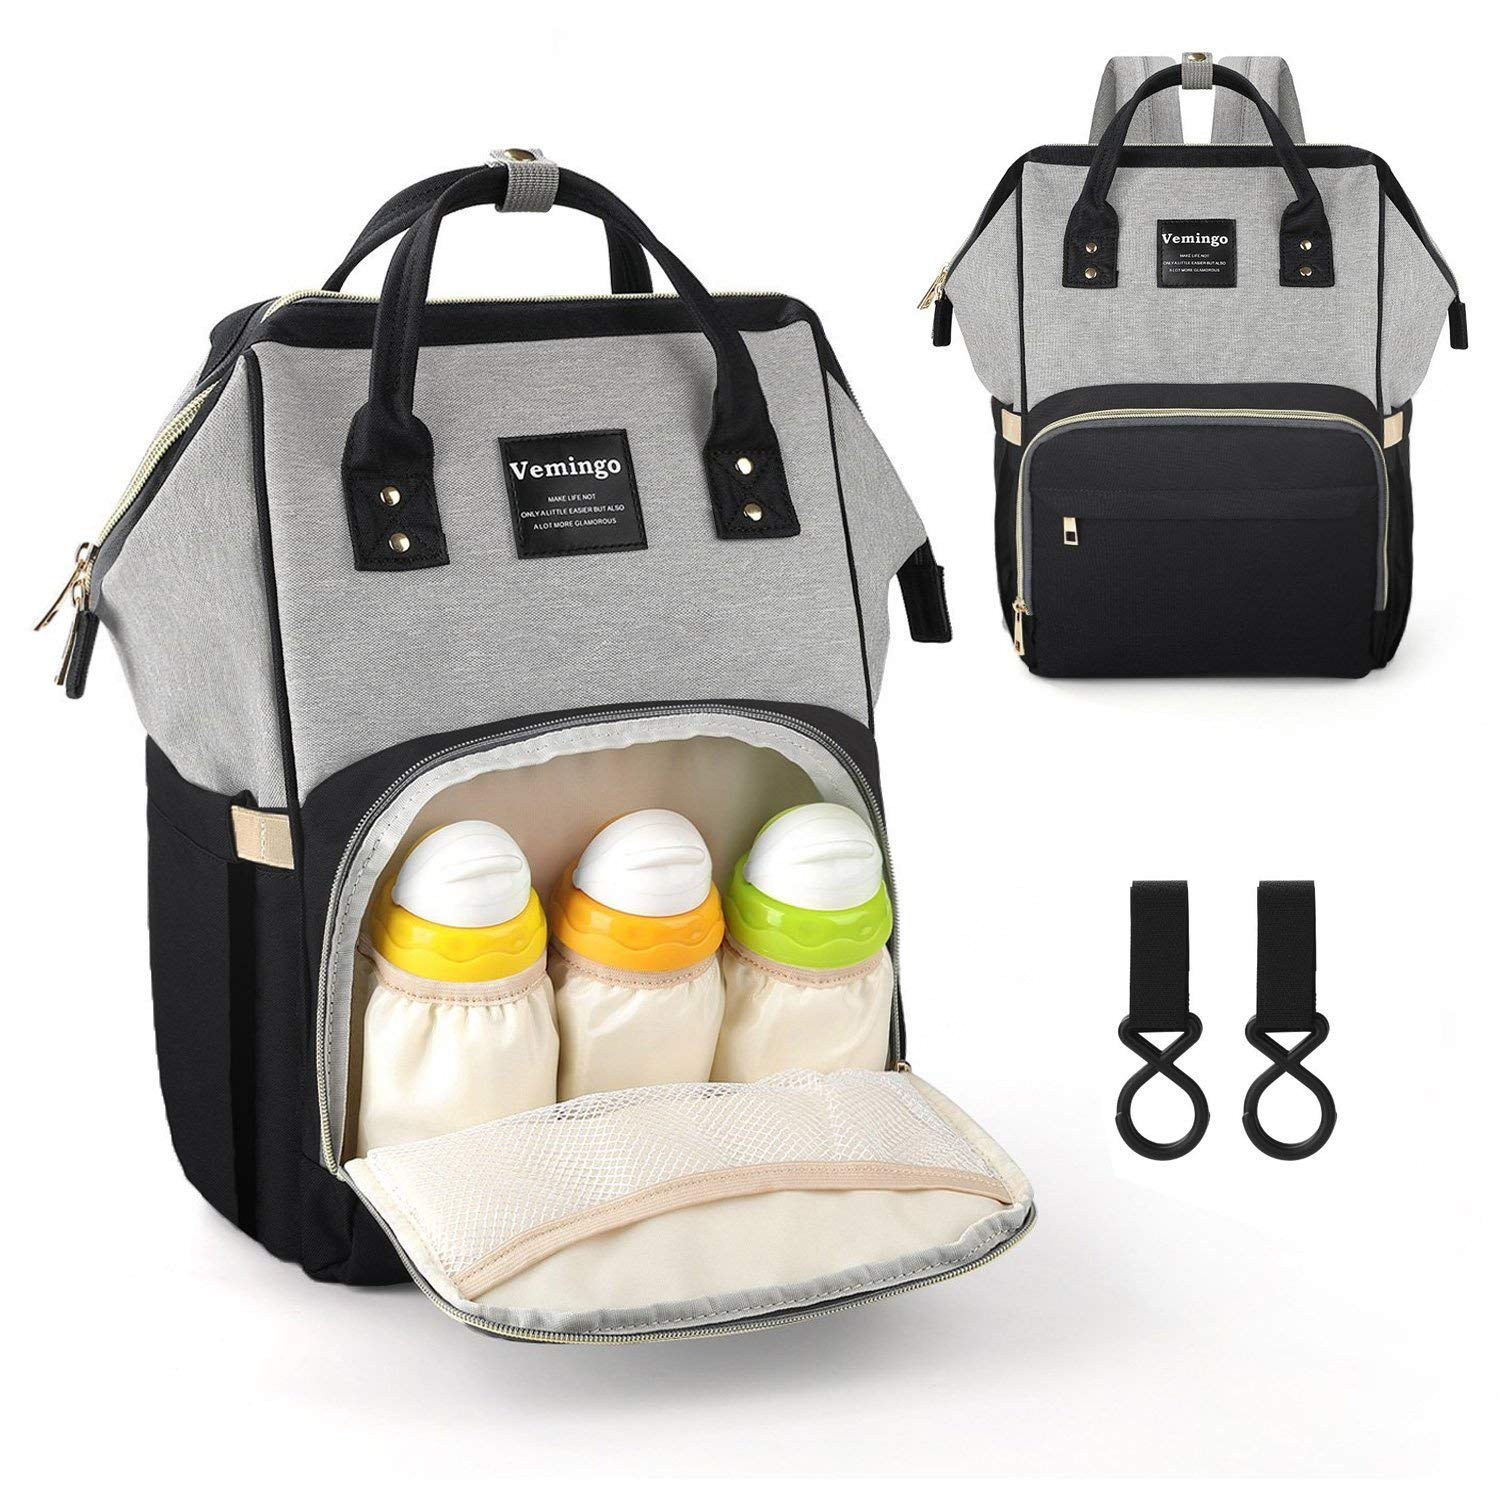 baby bag large-capacity multi-functional fashionable shoulders diaper backpack mothers portable baby care bag